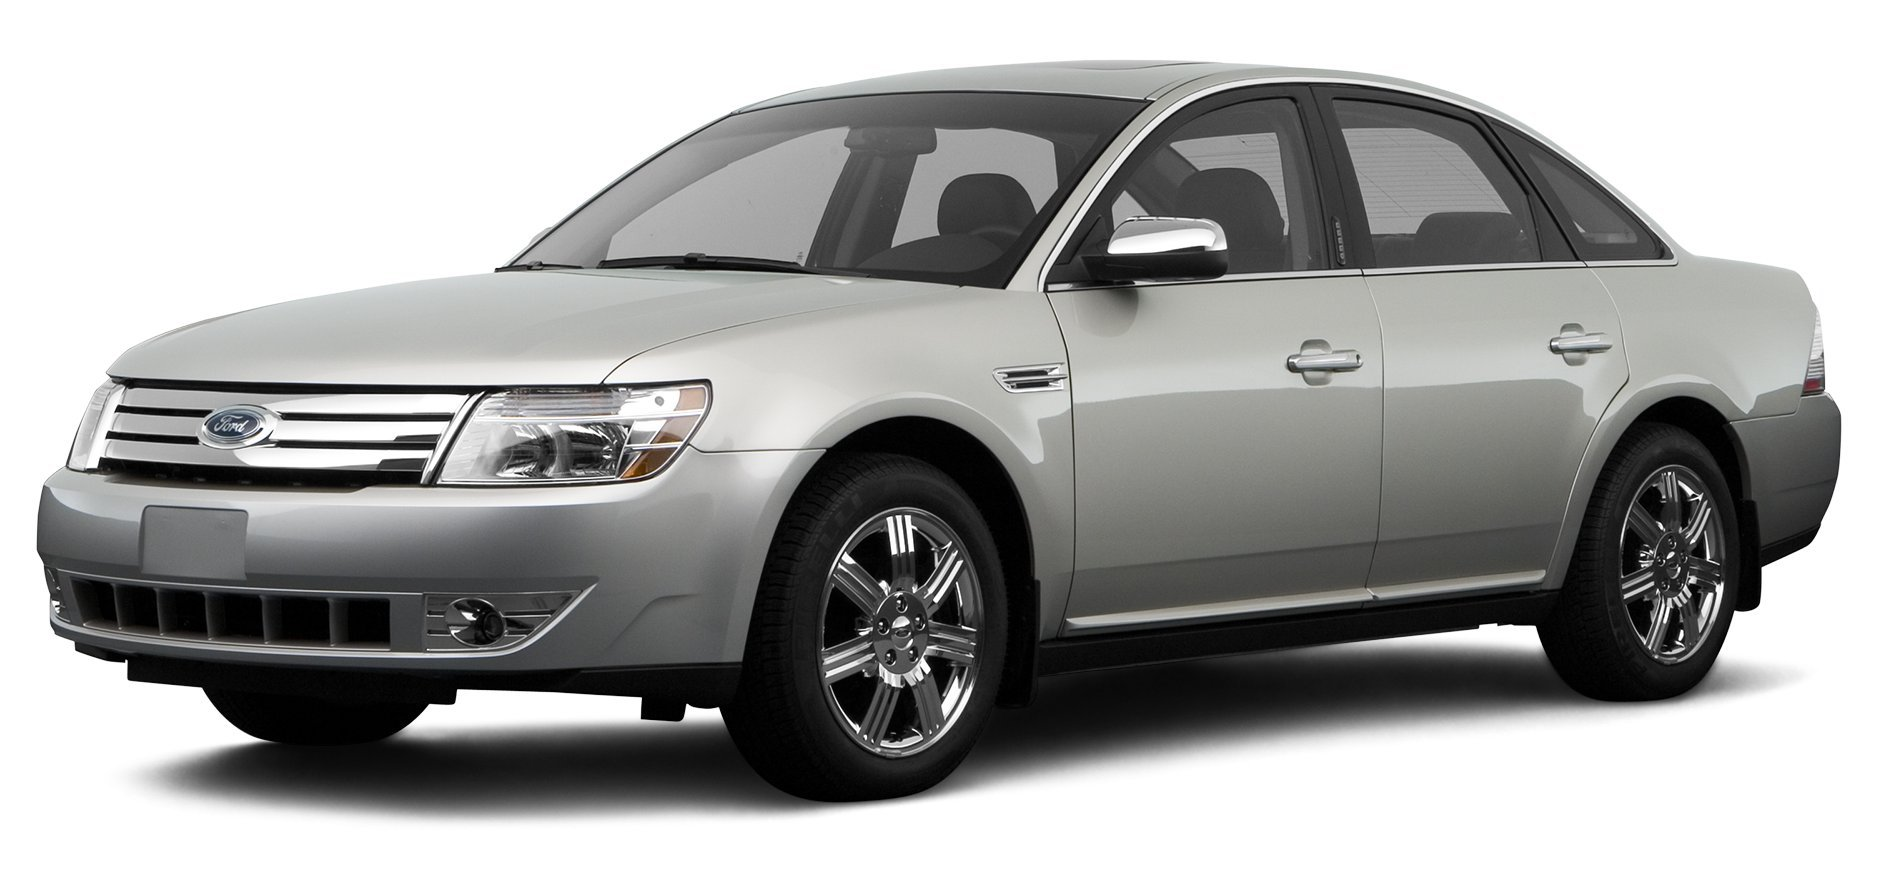 2009 ford taurus limited 4 door sedan all wheel drive